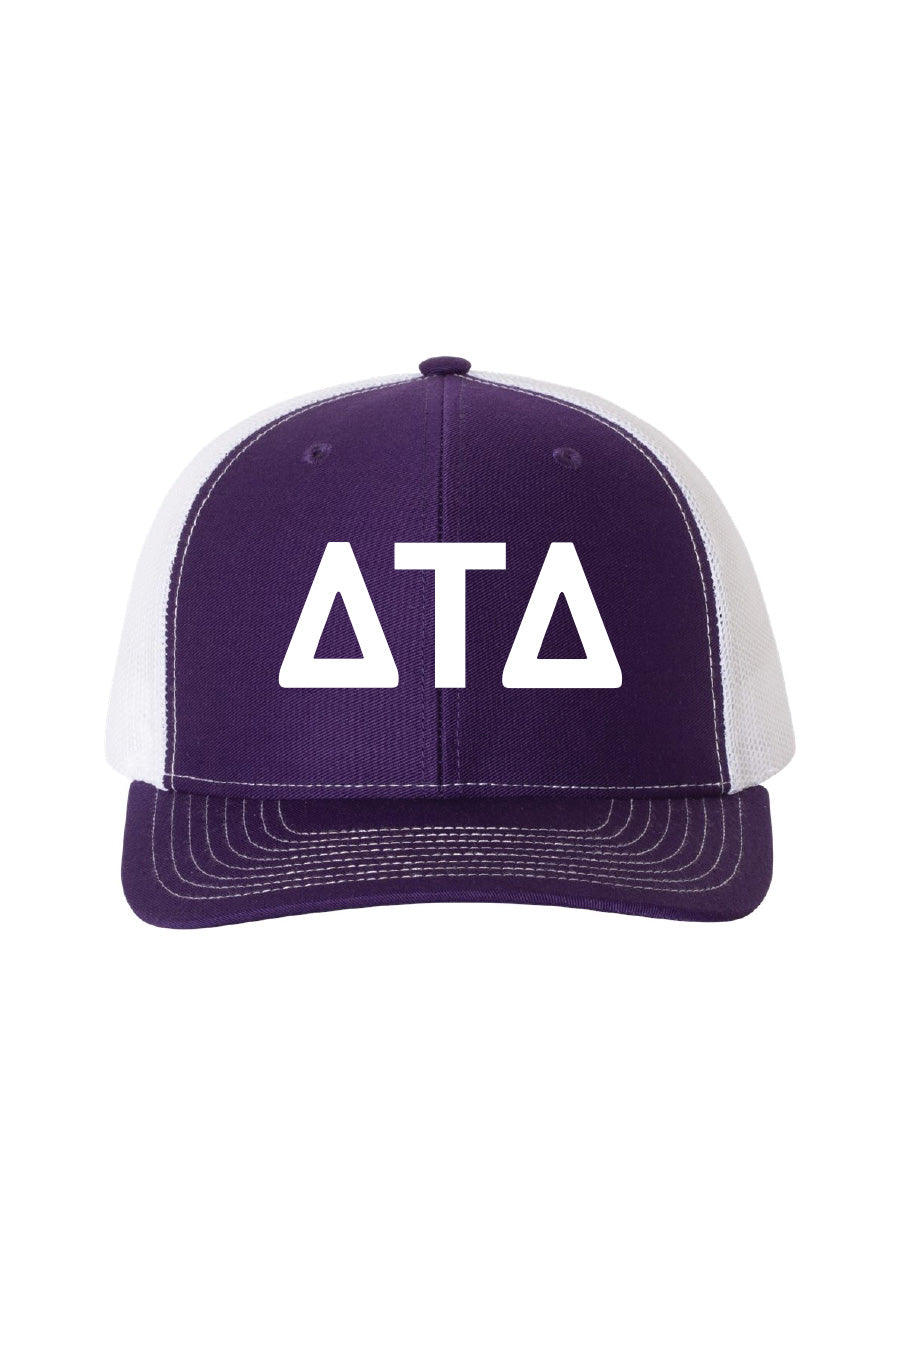 White and Purple Letter Hat